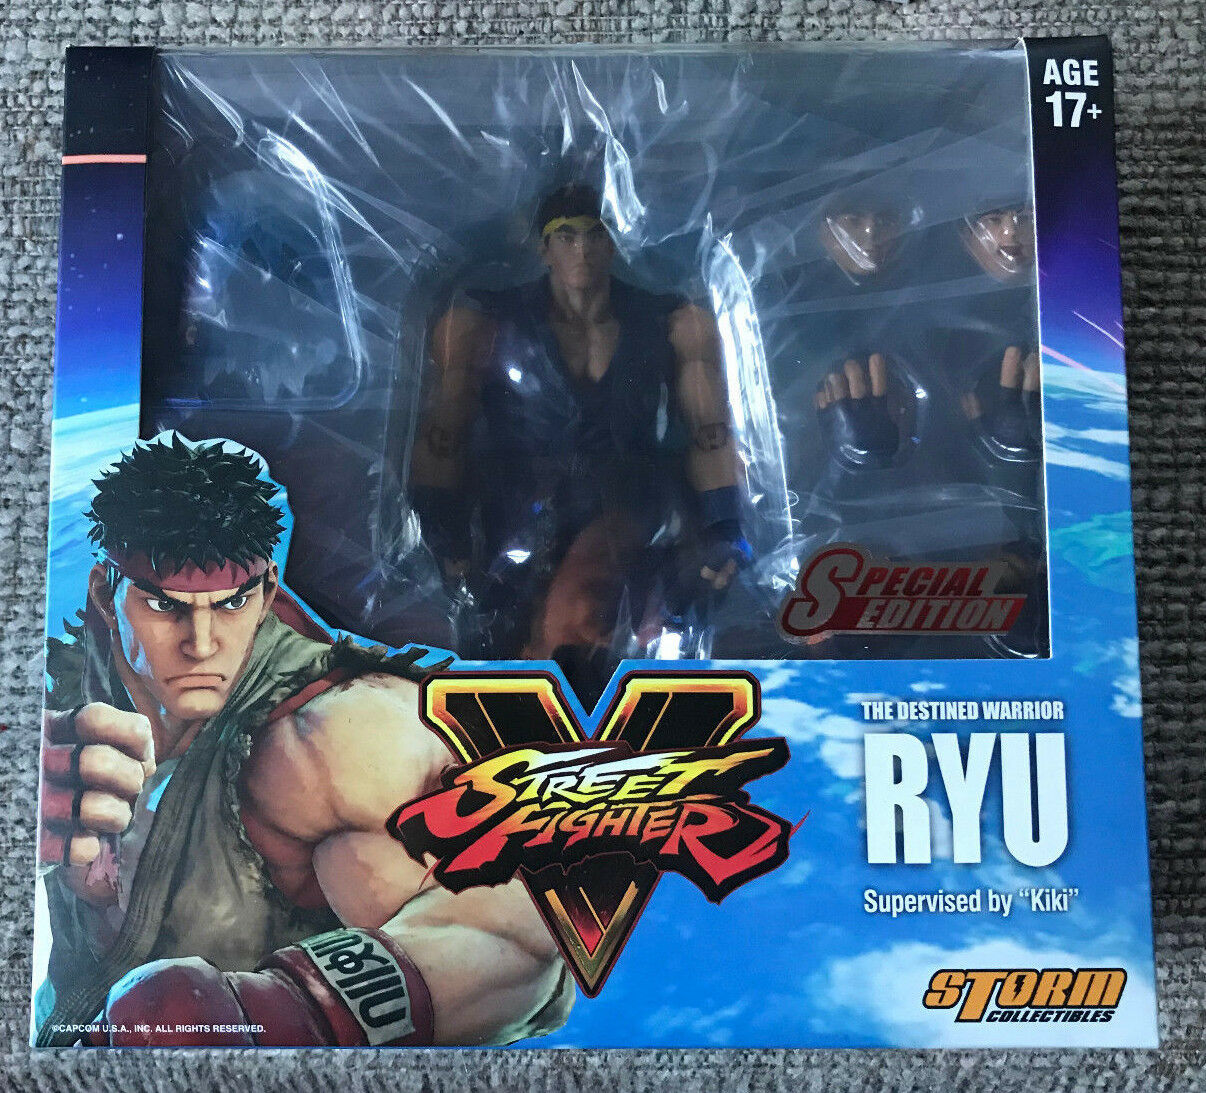 STORM COLLECTIBLES STREET FIGHTER V RYU SPECIAL EDITION 1 12 NEW SEALED